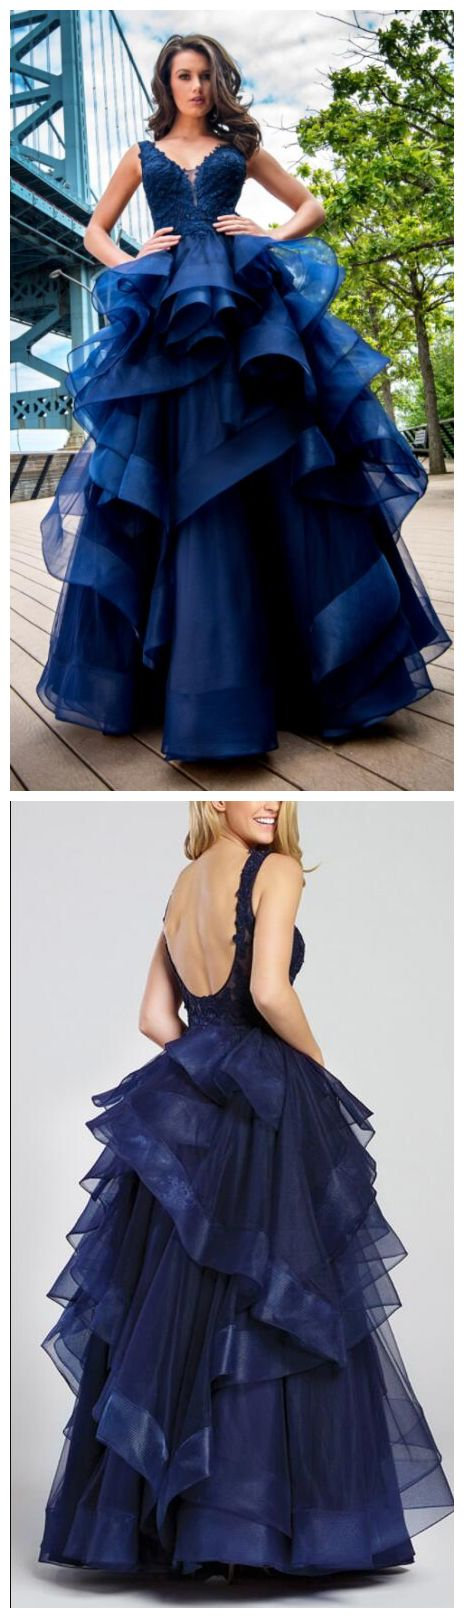 Prom Dresses ,Fashion Ball Gown Navy Blue Prom Dresses V Neck Backless Lace Appliques Ruffles Organza Floor Length Evening Party Dress Women Formal Dr from mfprom